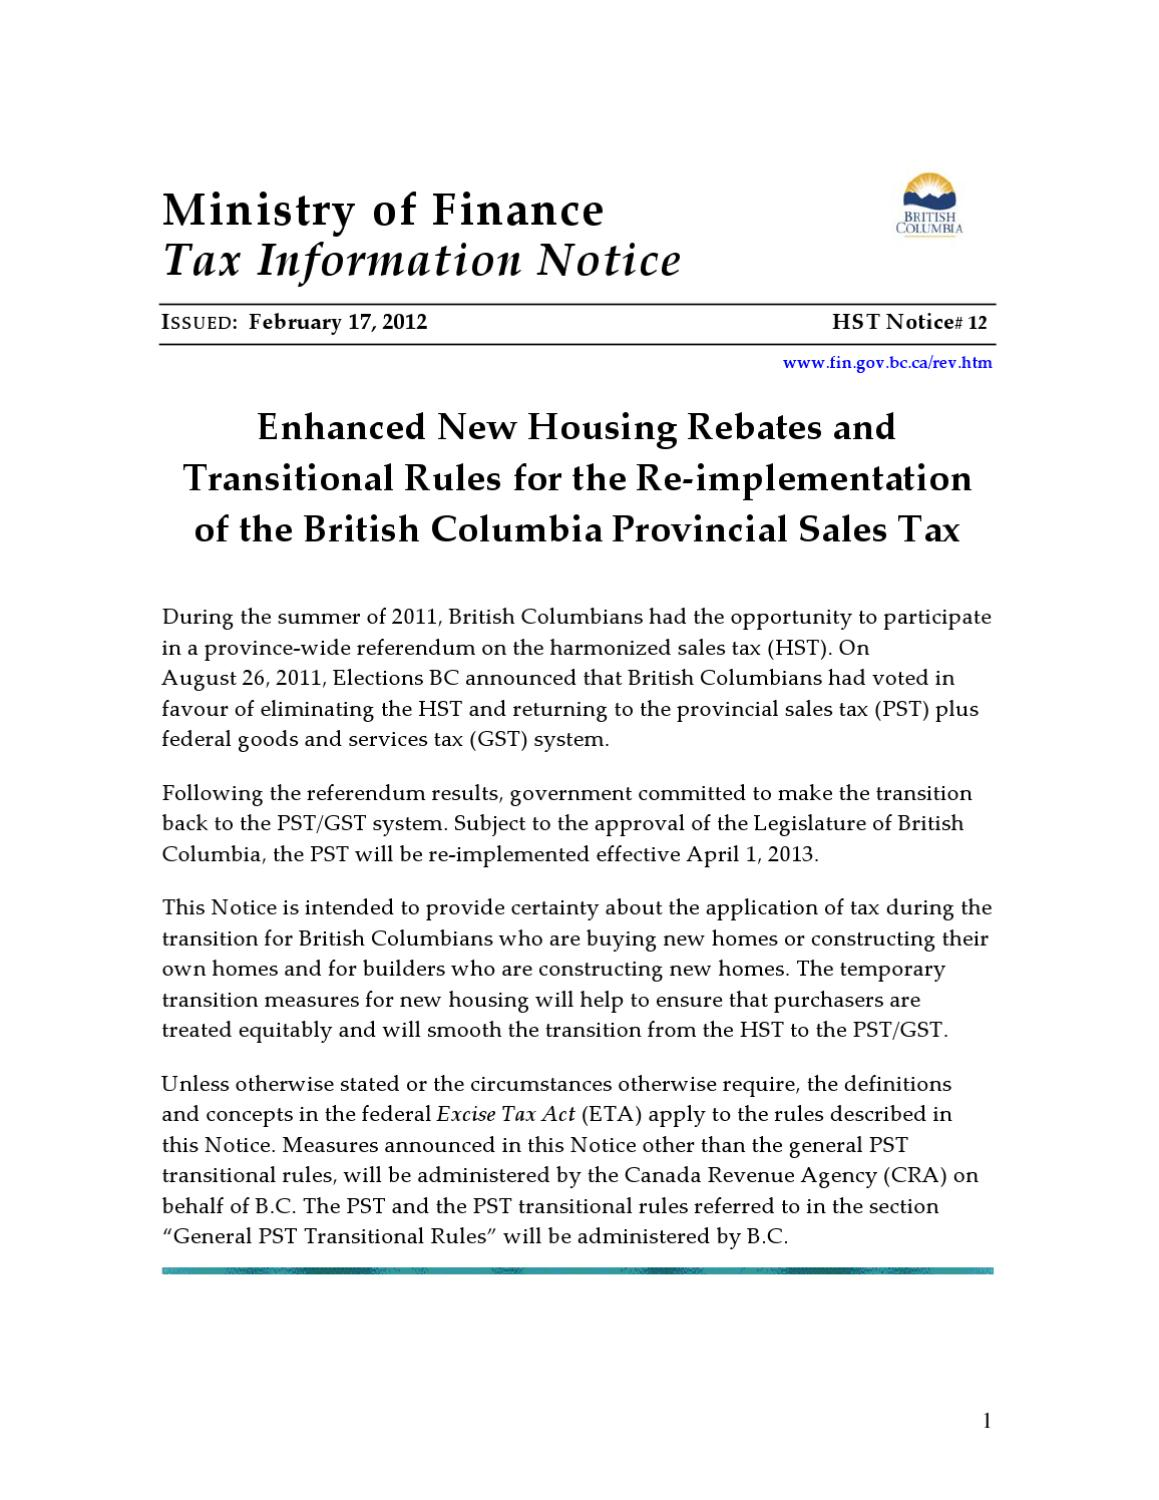 gst hst new housing rebate guide